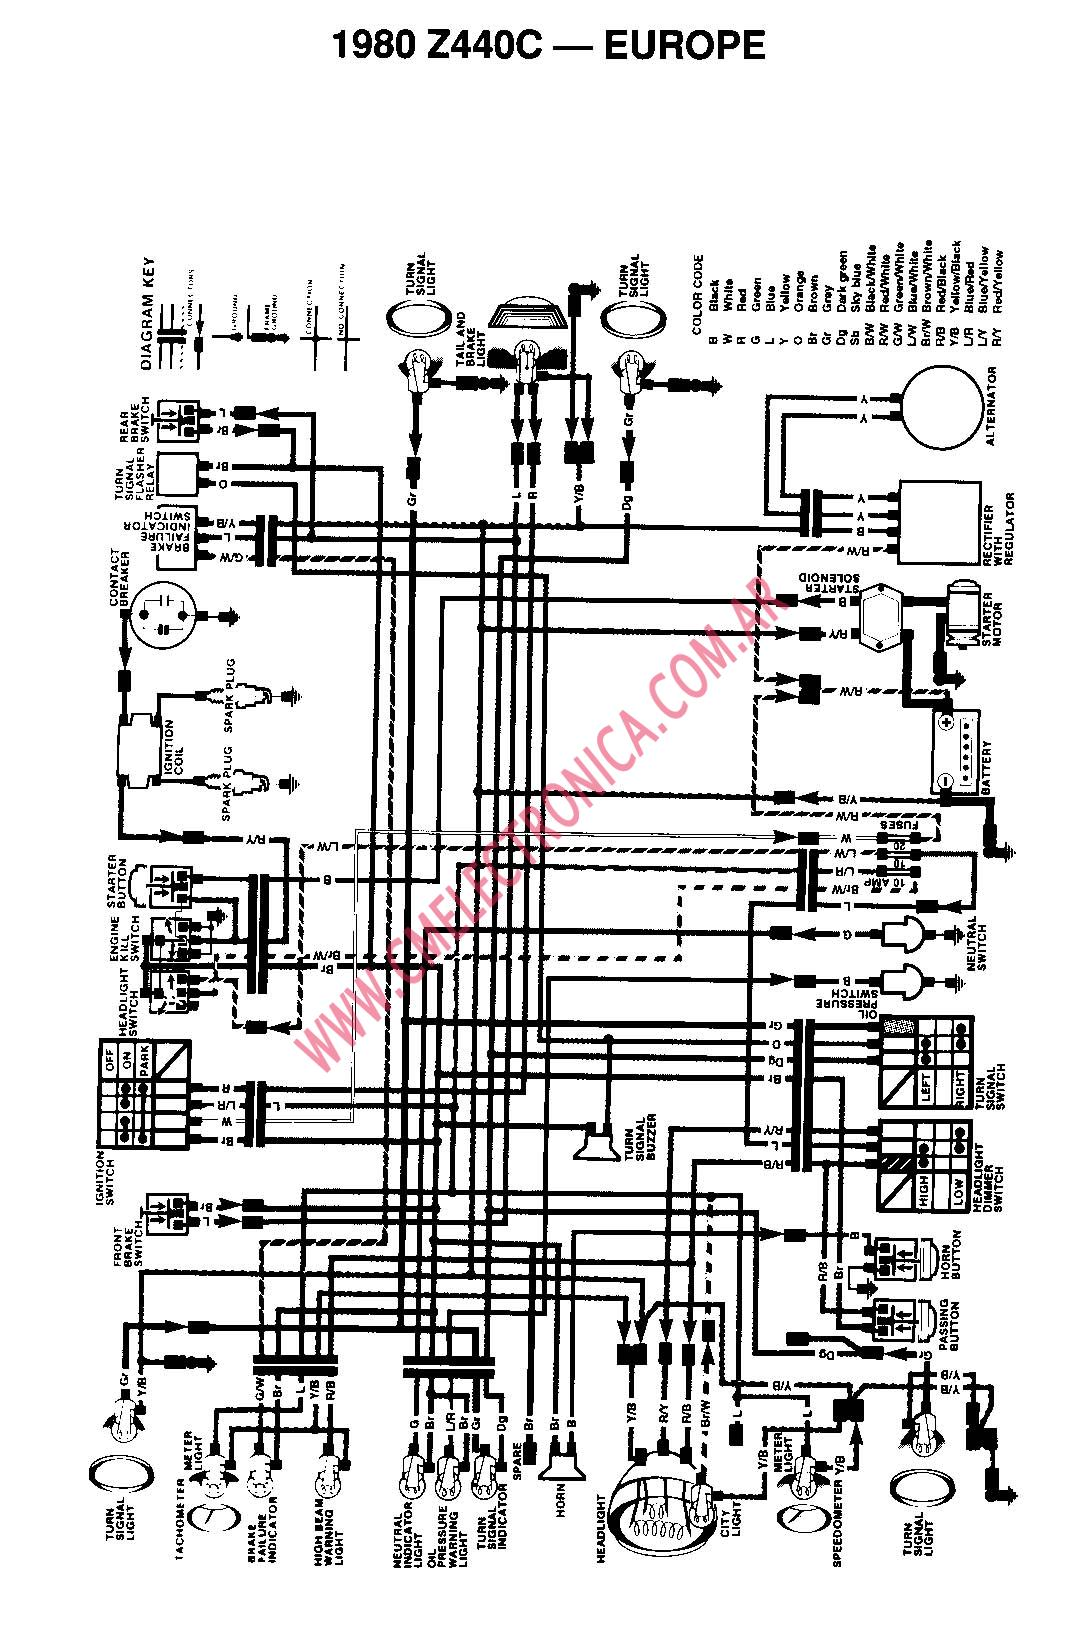 Kawasaki Bayou Klf300 Wiring Diagram And Schematics 220 4 Wheeler Electrical Diagrams Get Free Image About 1987 185